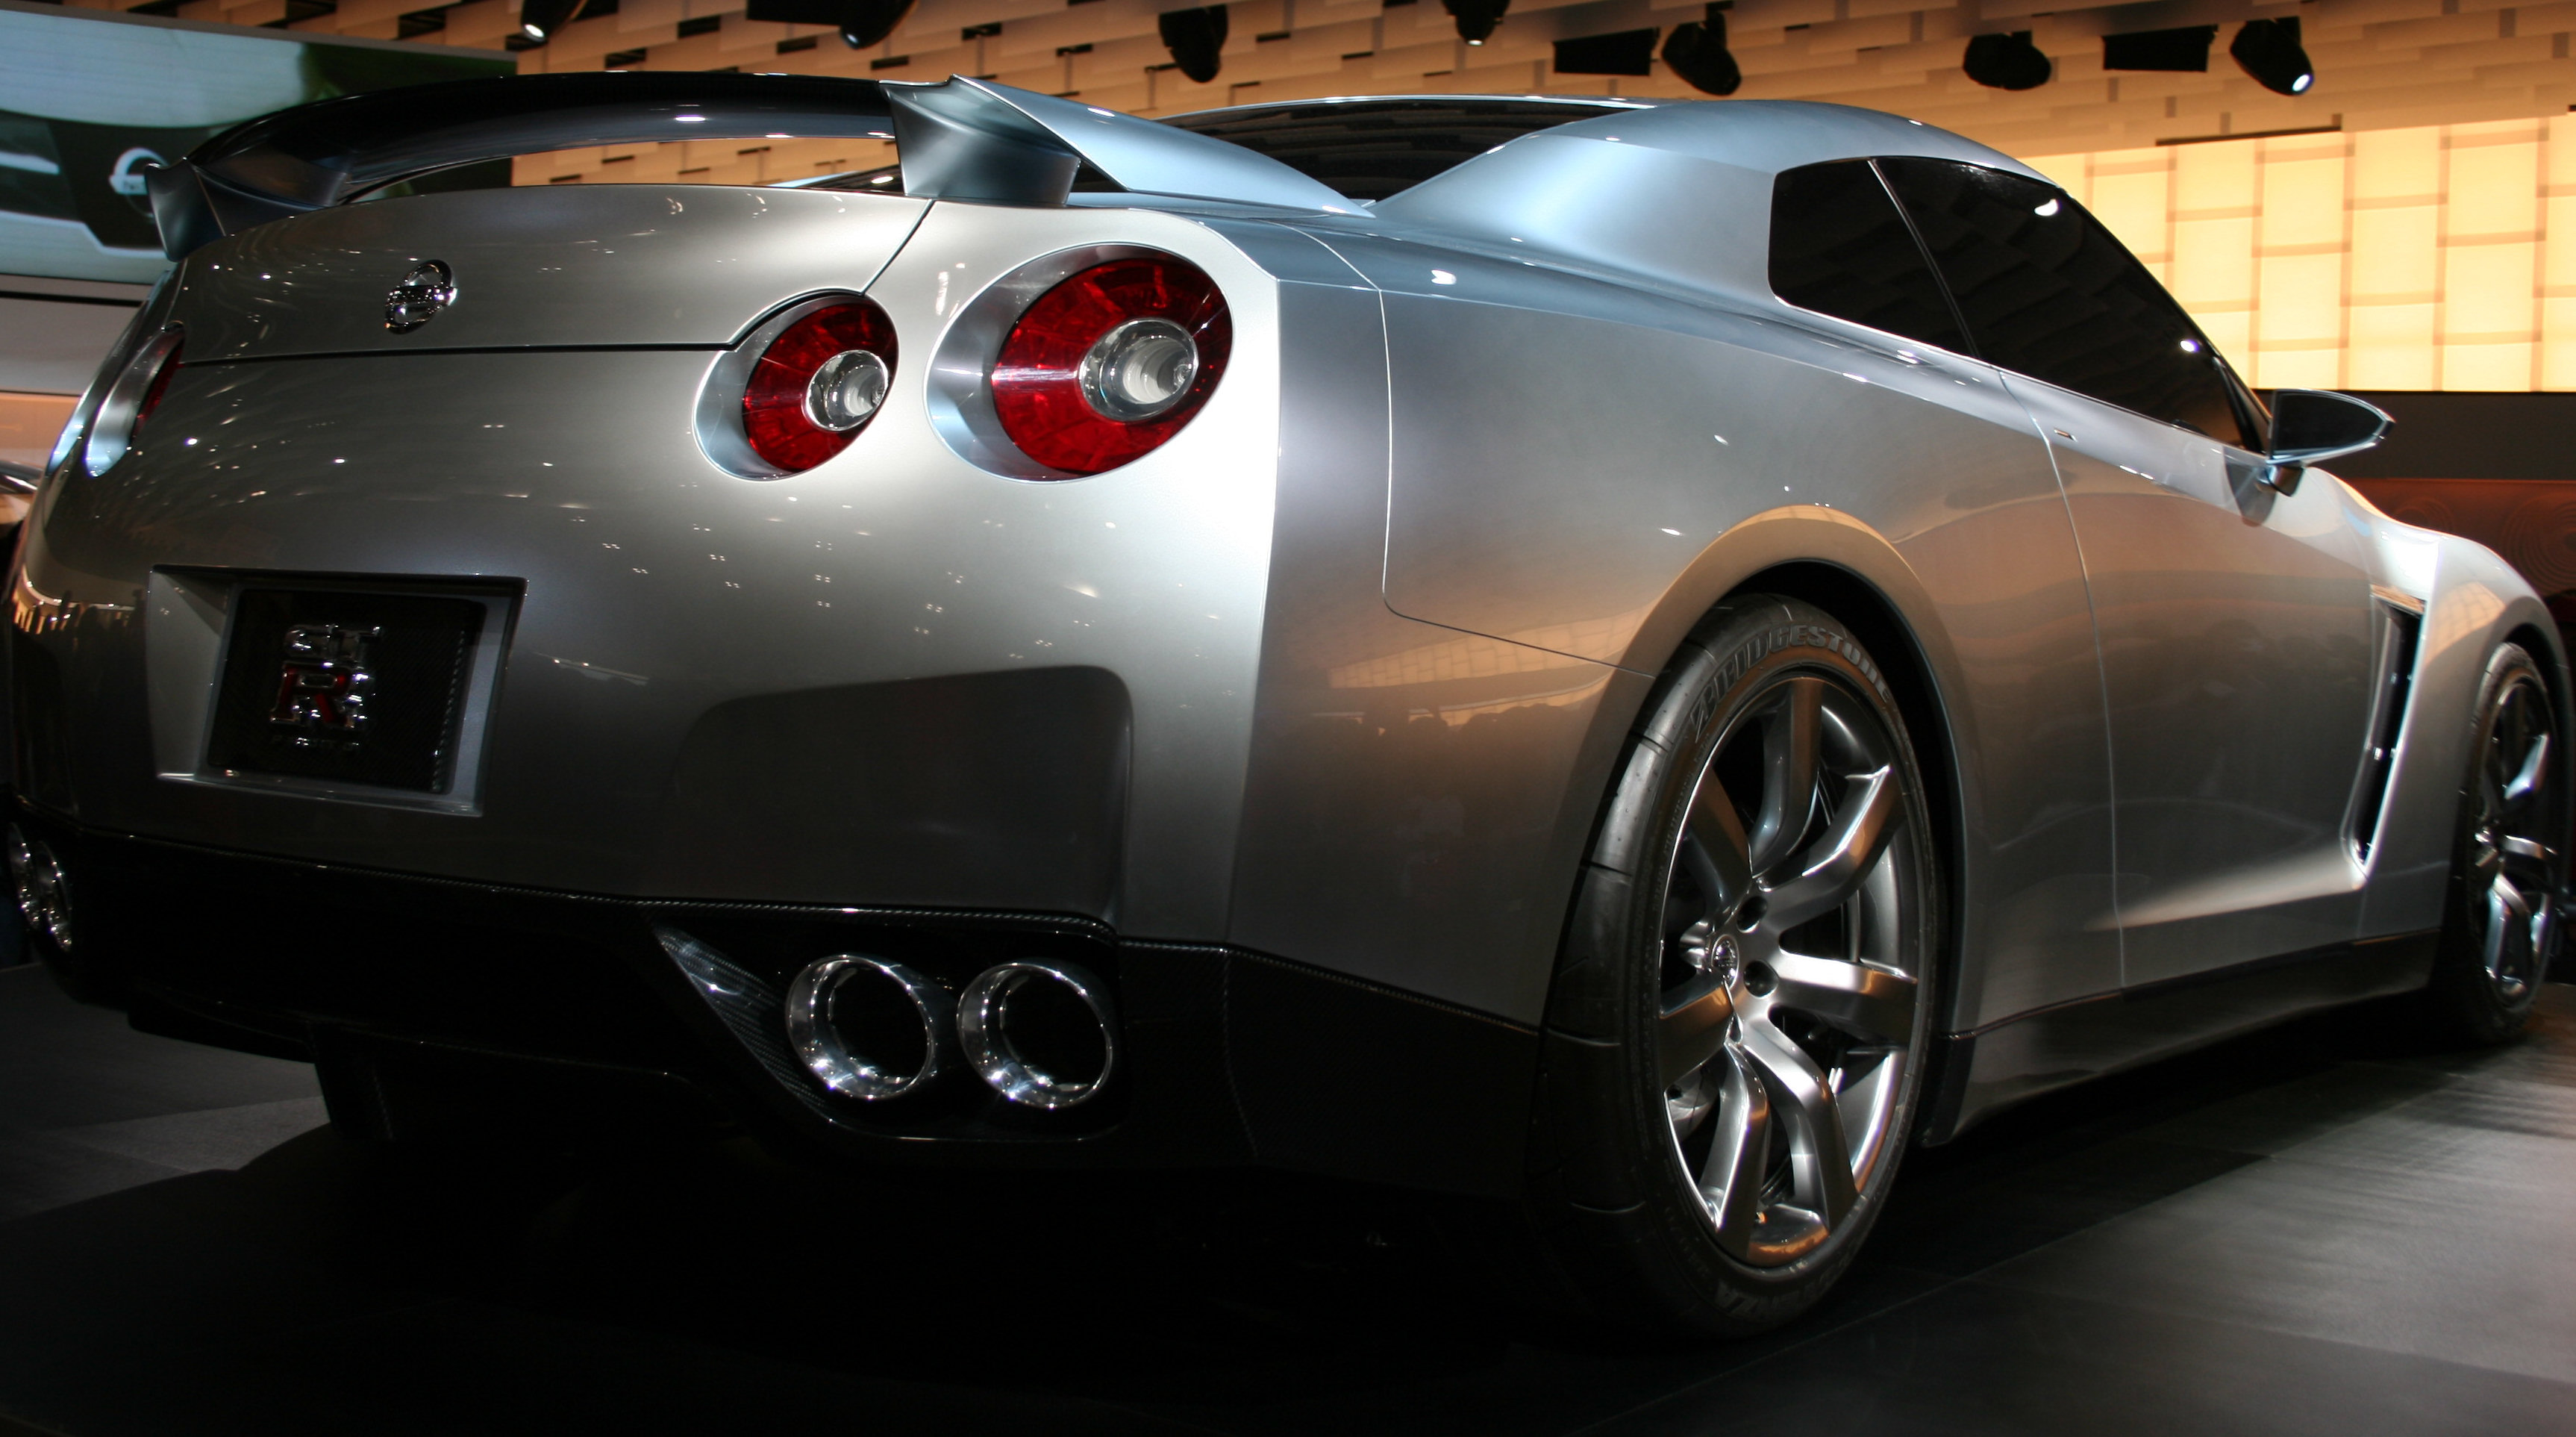 file:nissan gt-r 2005 tms 2 - wikimedia commons